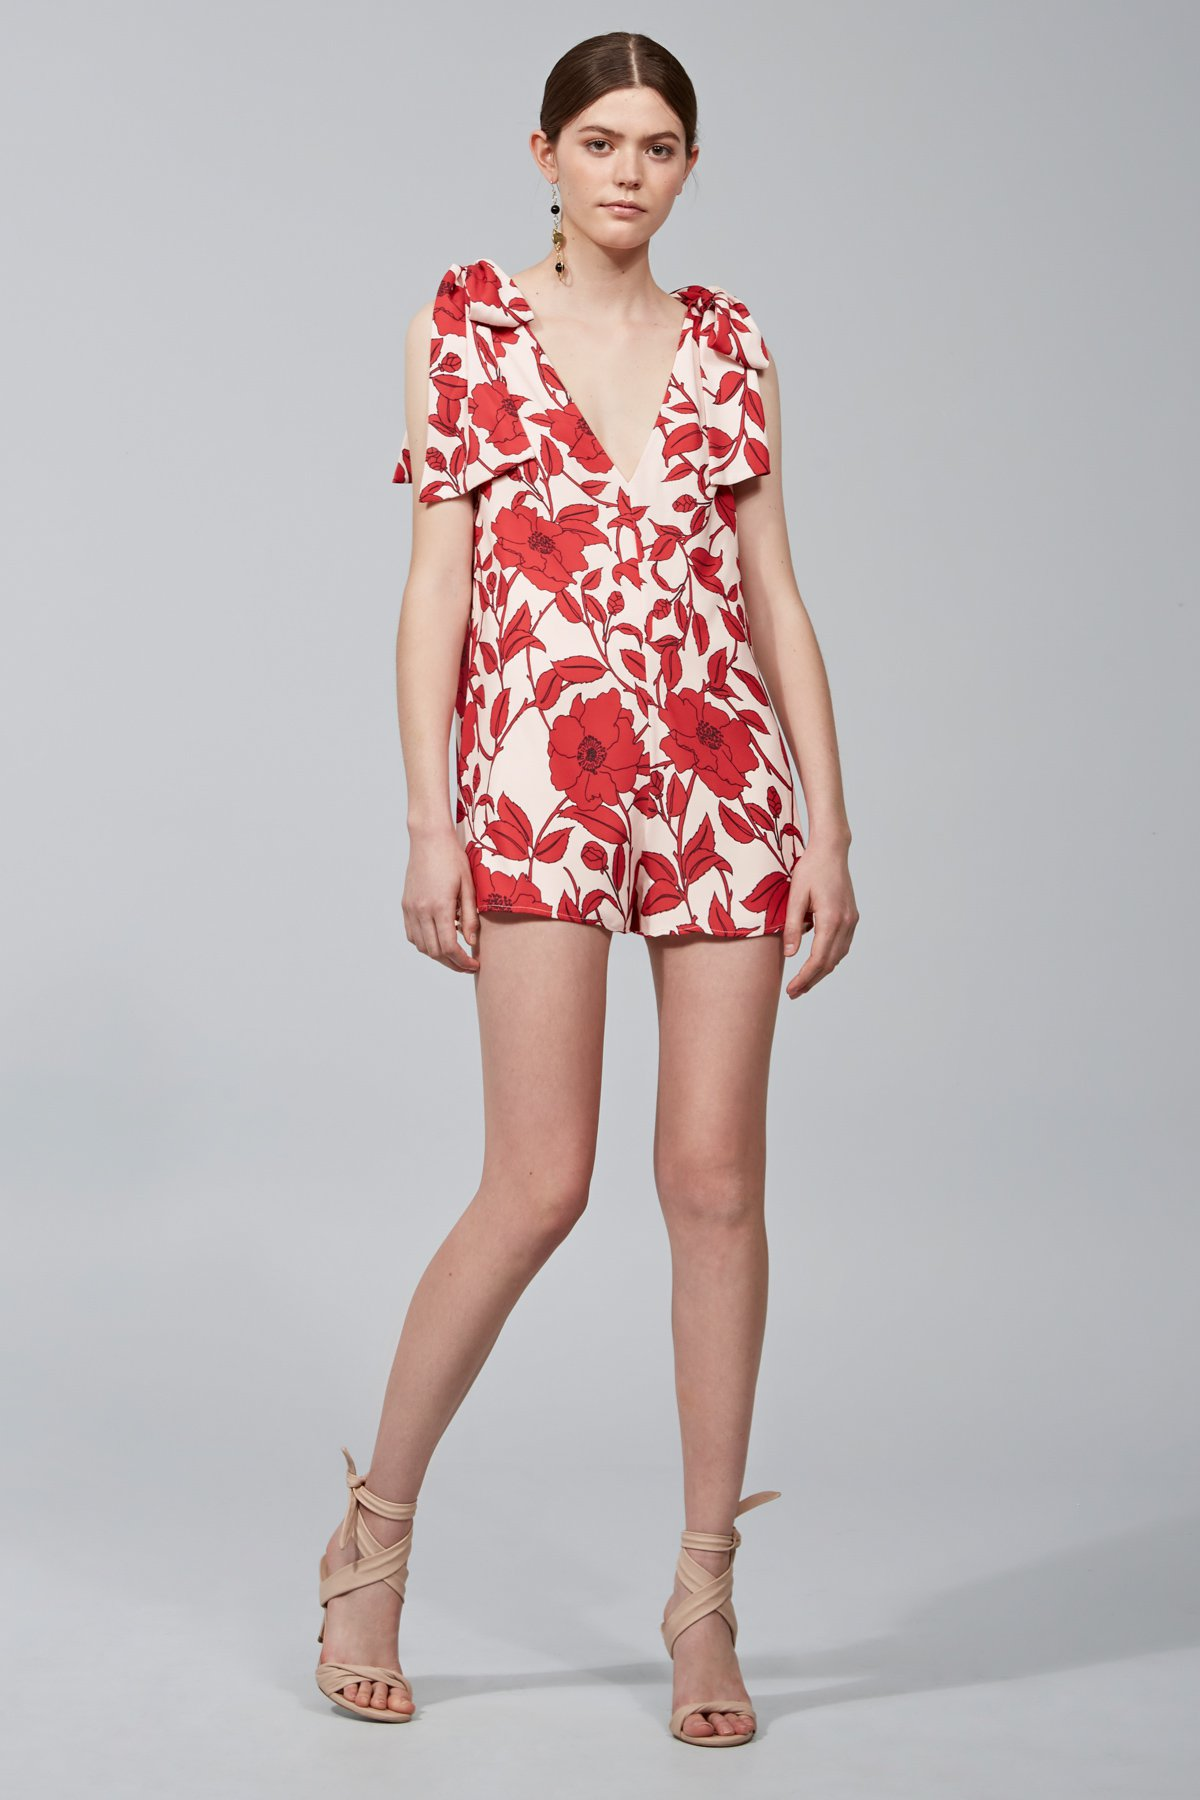 1705_ks_all_tied_up_romper_light_floral_print_nh_45129-2_1.jpg